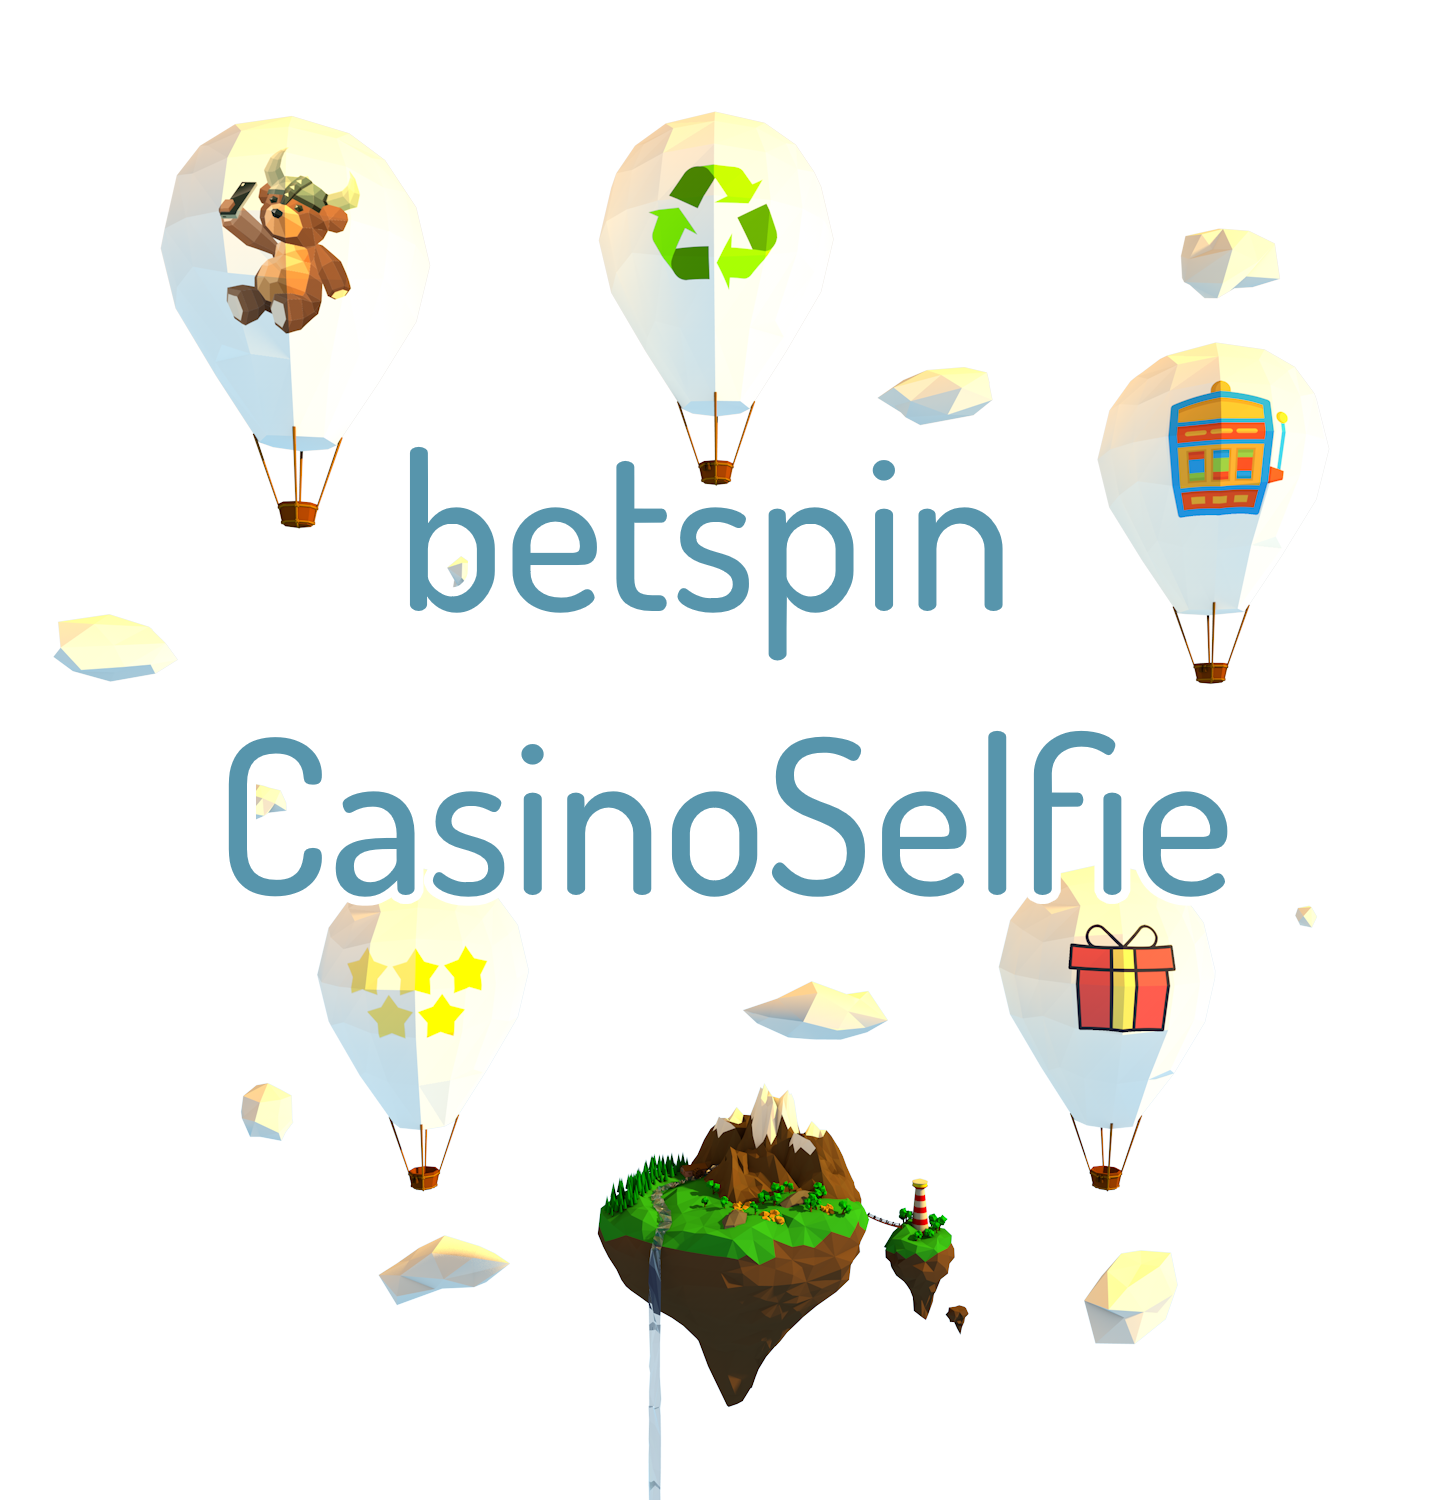 Betspin omtale